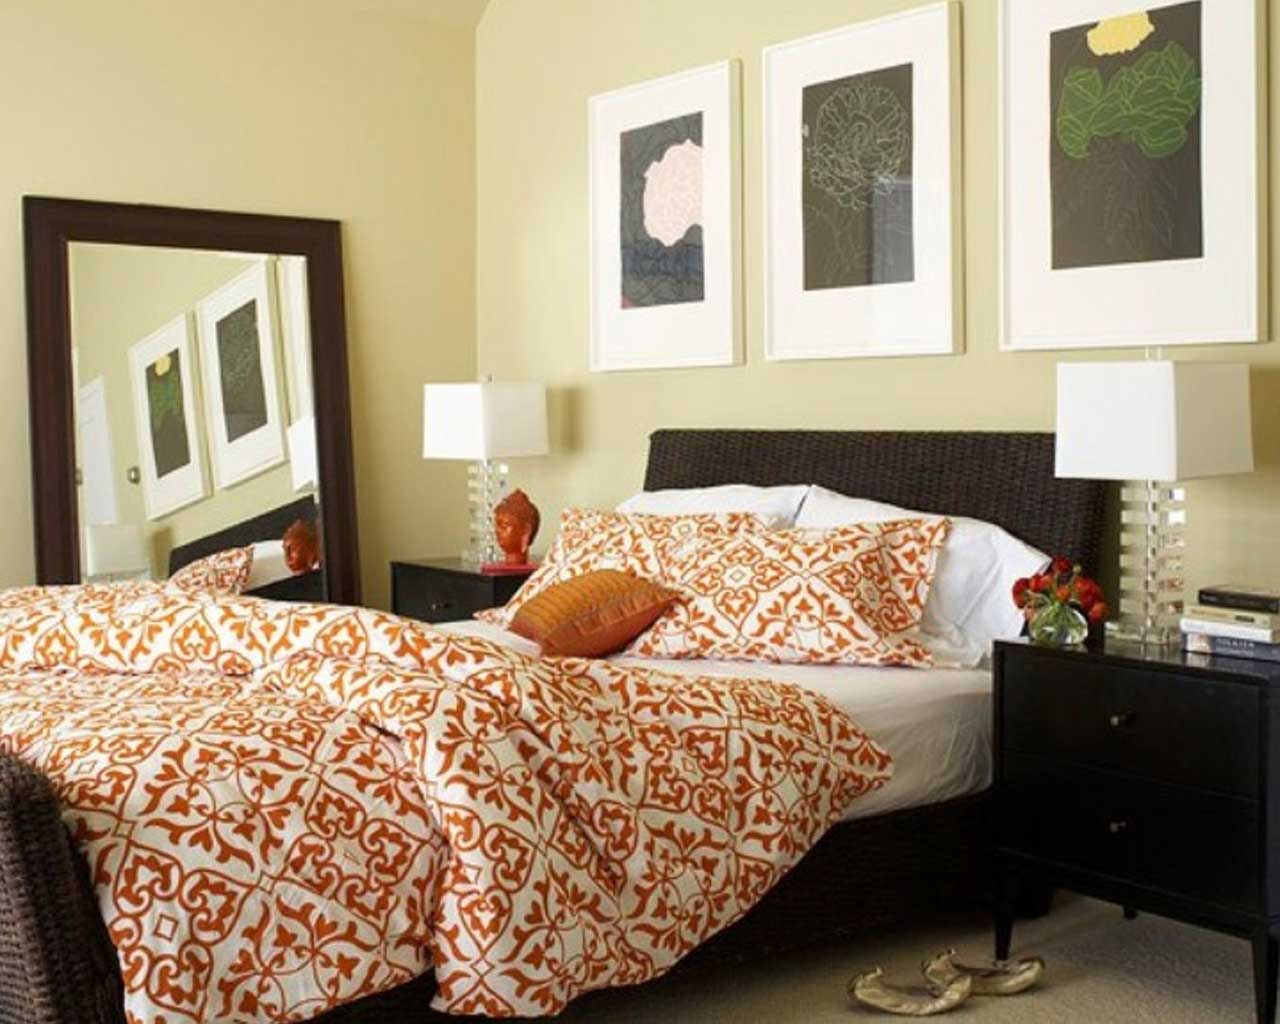 easy fall decorating ideas. Black Bedroom Furniture Sets. Home Design Ideas